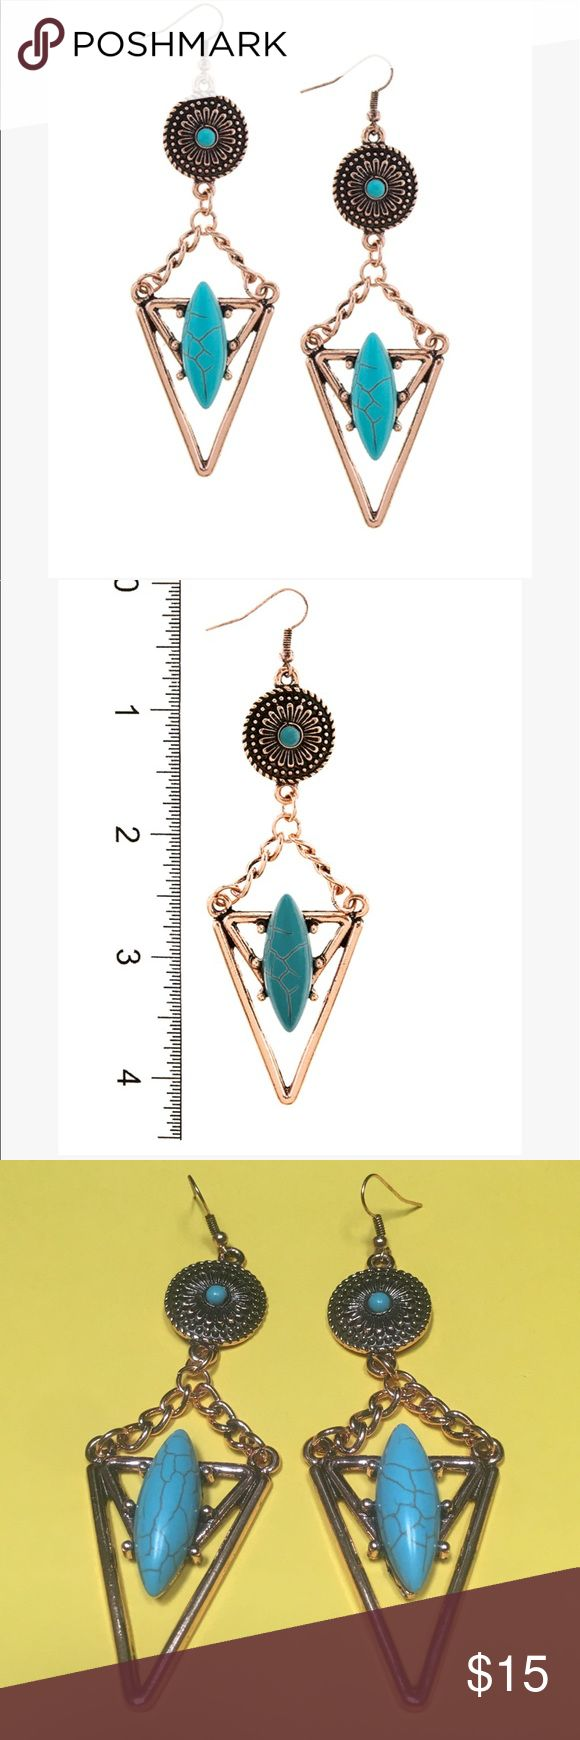 """🆕Antique Copper Festival Earrings Drop Approx. 4.4"""" Fish hook. Faux stone. Price firm unless bundling. Get a better value when you bundle. Copper and turquoise colors. Evolving Always Jewelry Earrings"""